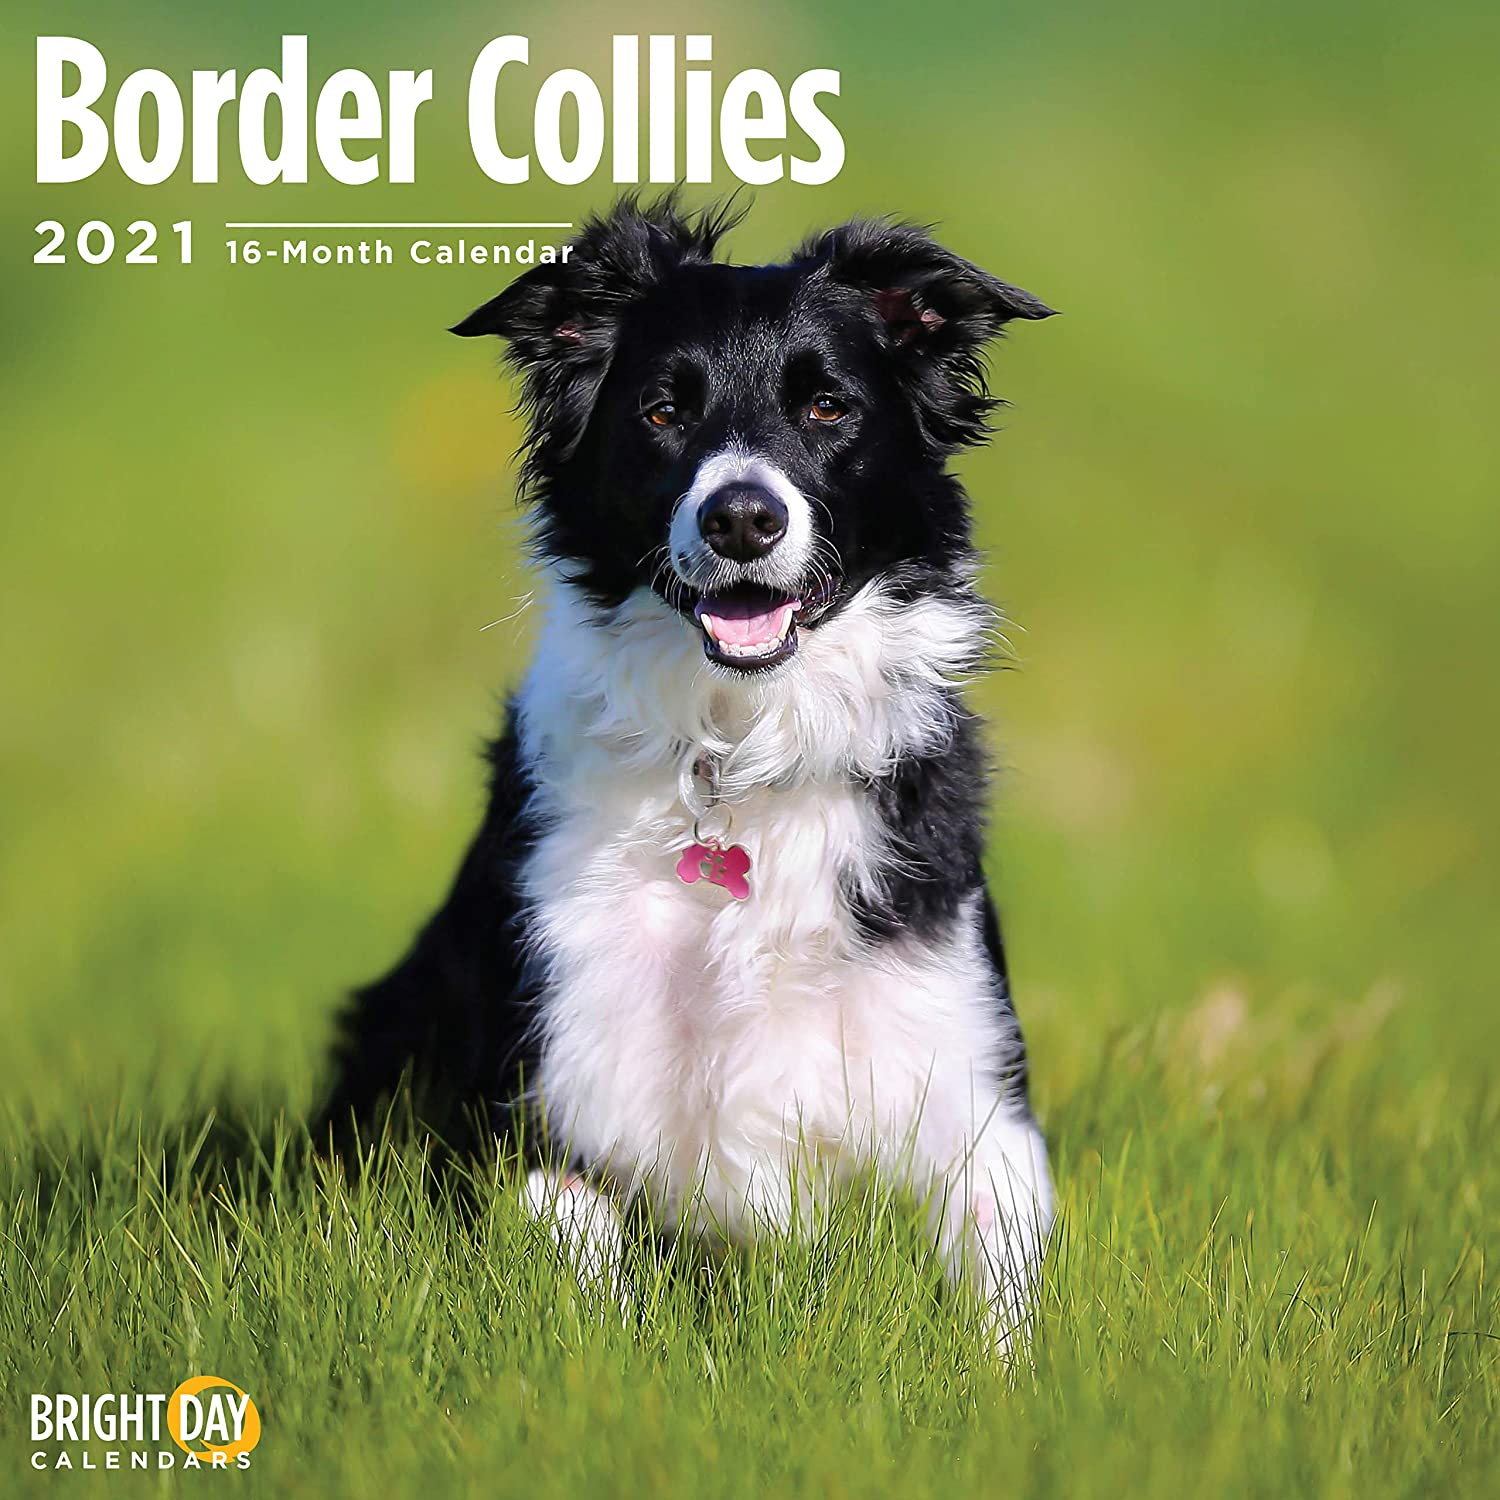 2021 Border Collies Wall Calendar by Bright Day, 12 x 12 Inch, Cute Dog Puppy